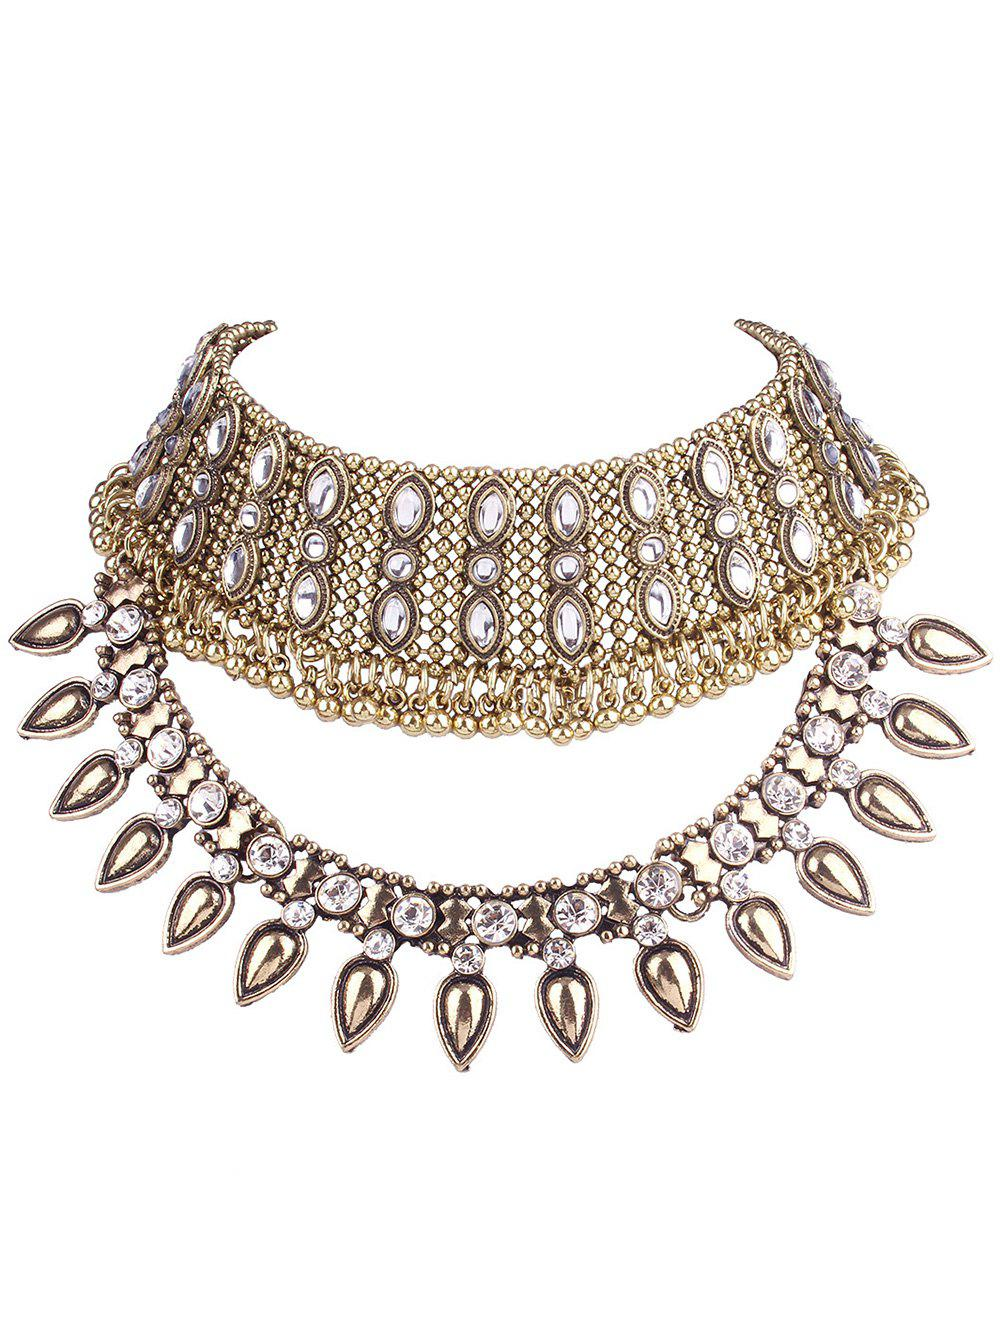 Teardrop Beads Rhinestone Choker -  GOLDEN